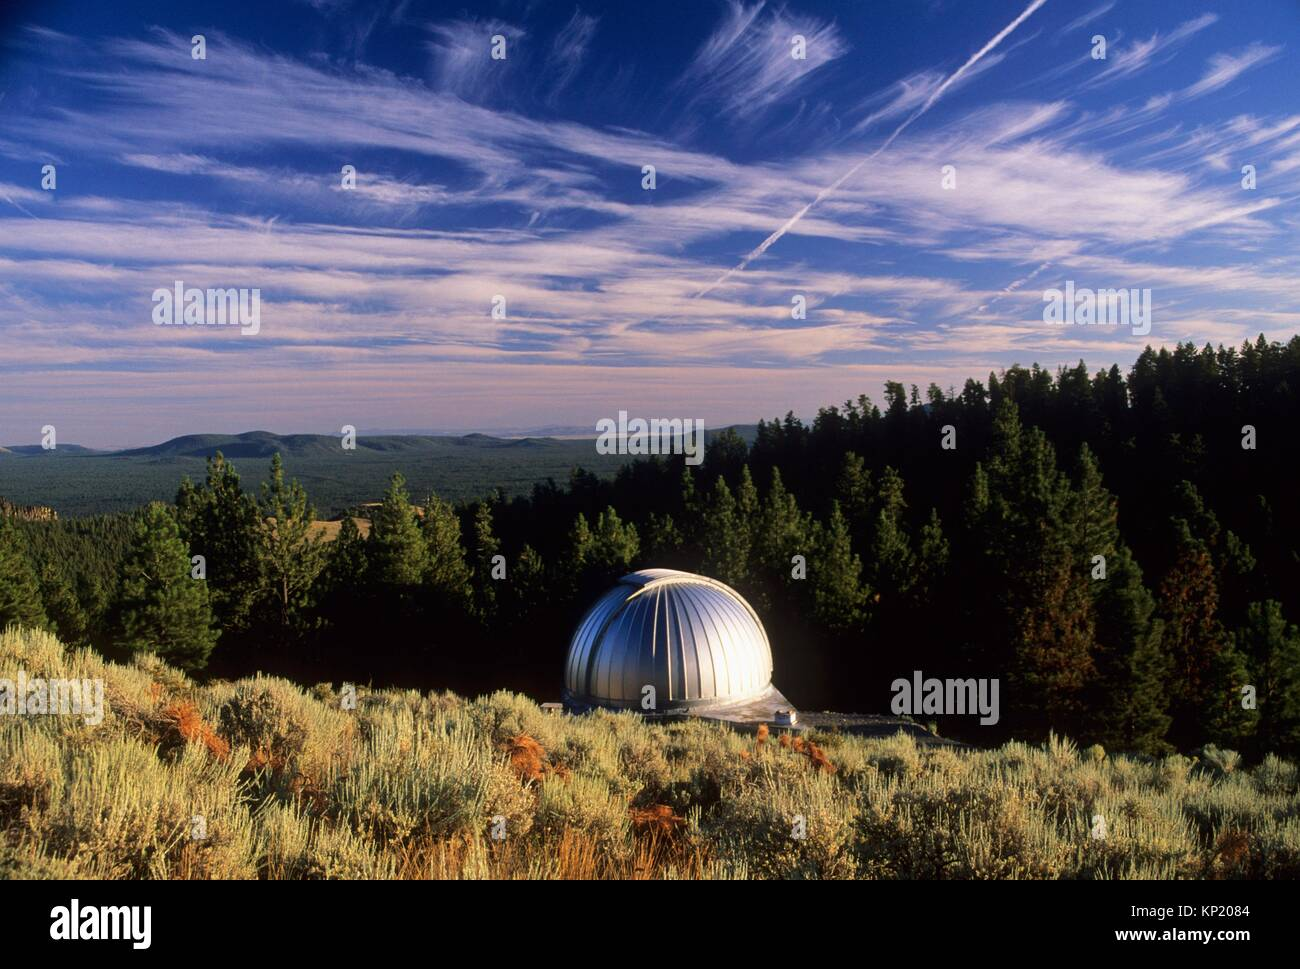 Pine Mountain Observatory, Deschutes National Forest, Oregon. - Stock Image